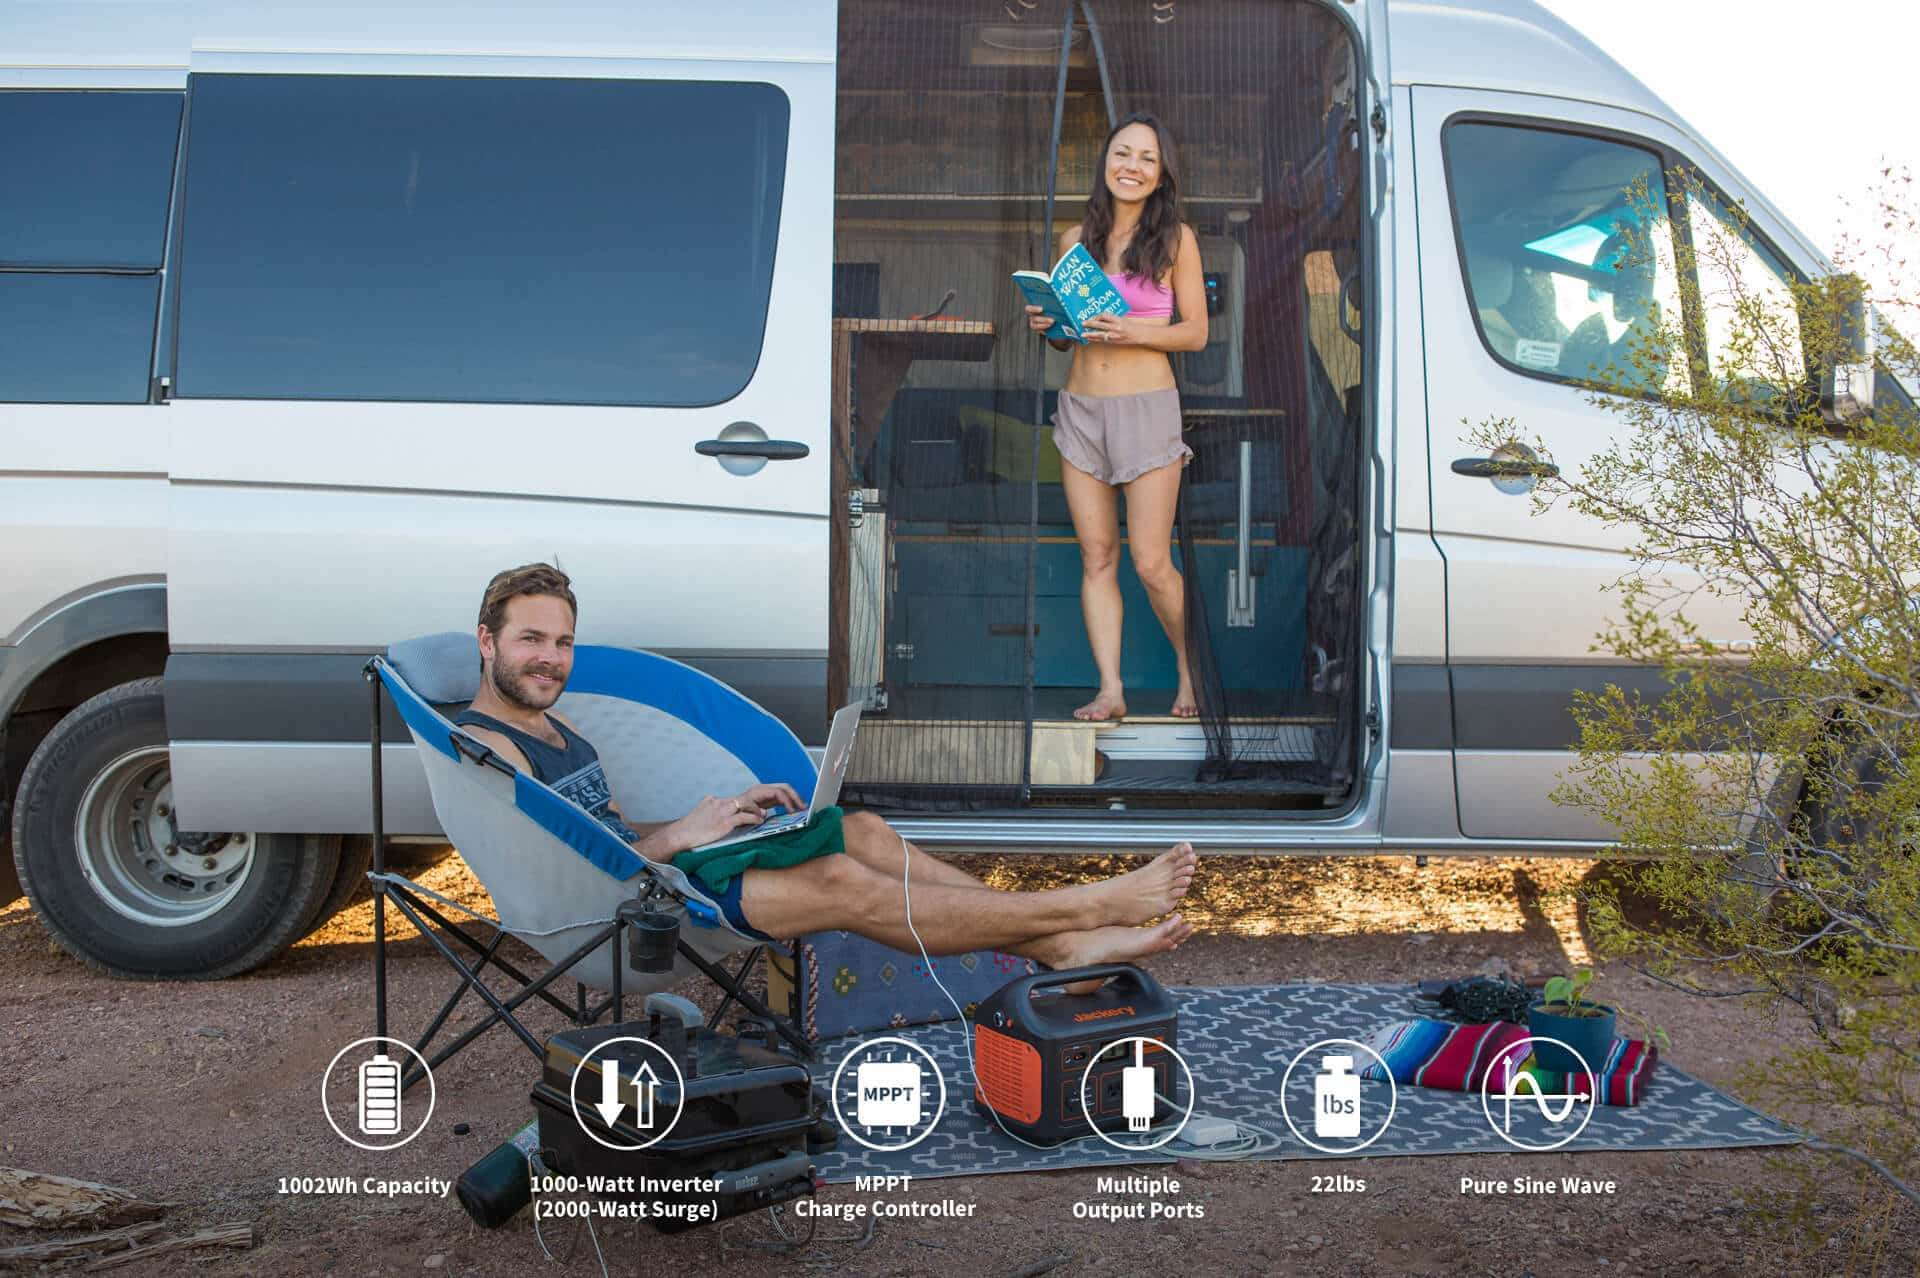 jackery explorer 1000 power station is suitable for camping to charge devices.